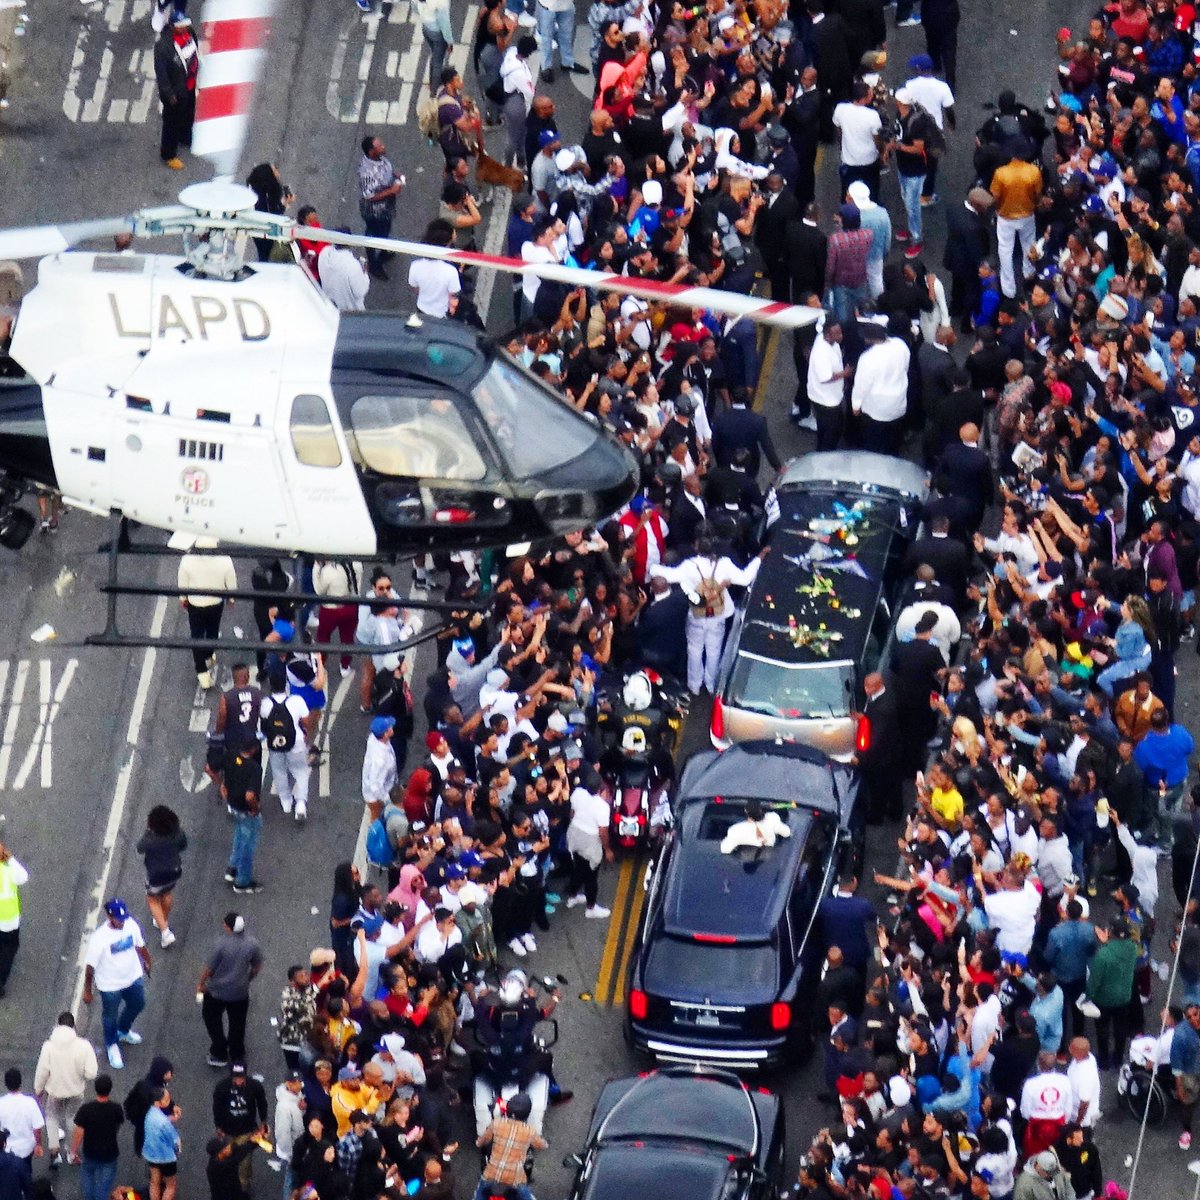 #Air7HD over the @NipseyHussle funeral procession as thousands pay their respects to the beloved #SouthLA rap artist. @ABC7  #abc7eyewitness #ripnipseyhussle #ripnipsey